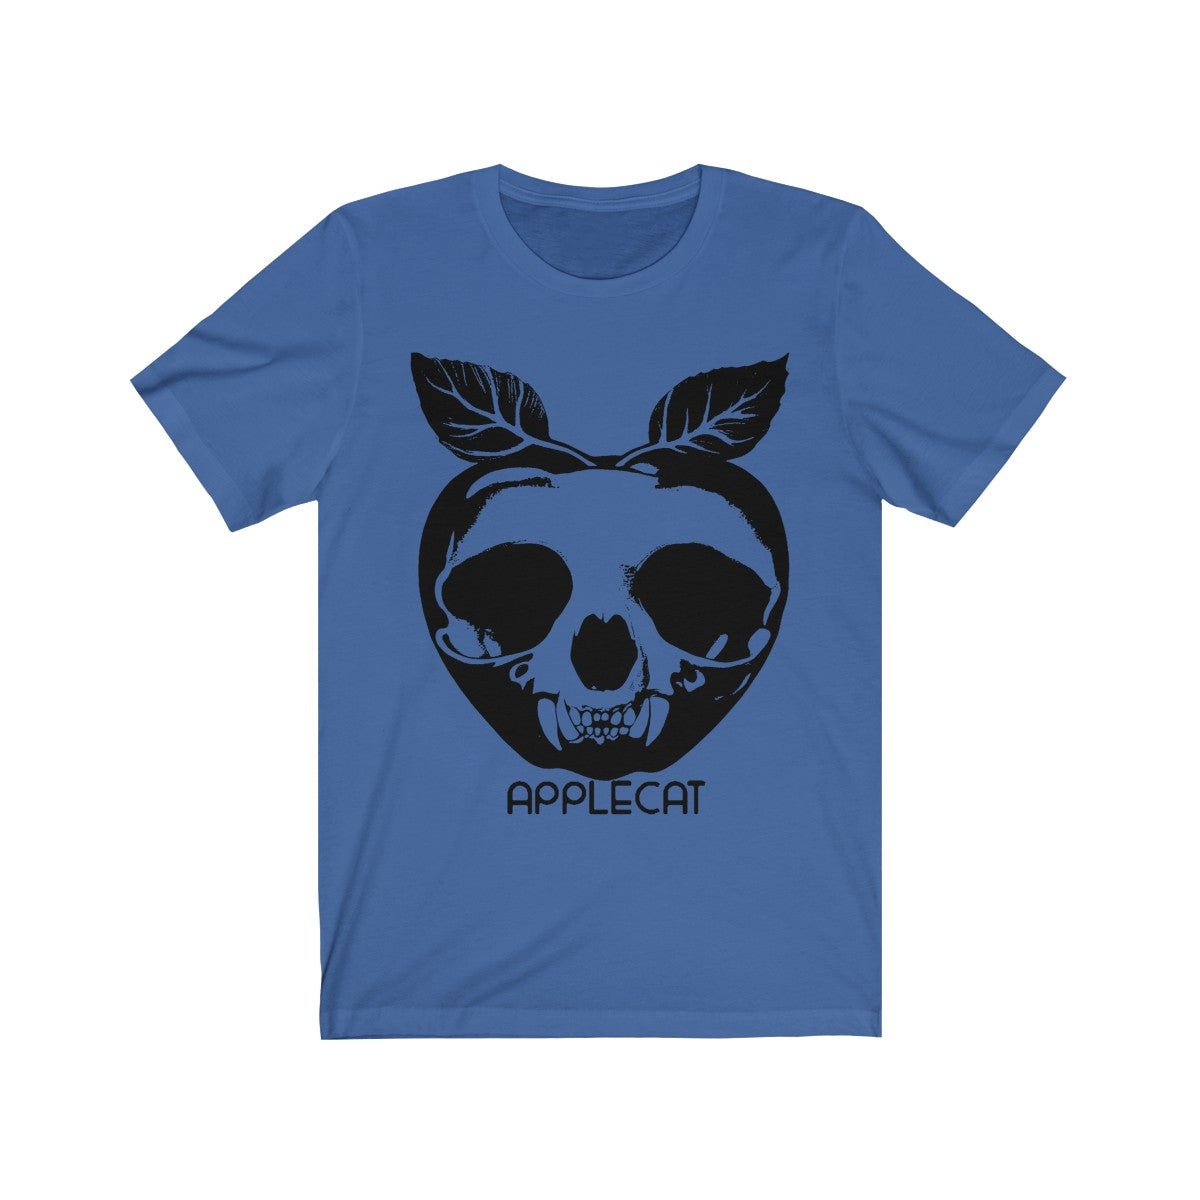 AppleCat Whatever-Gender Tee (14 colours available)